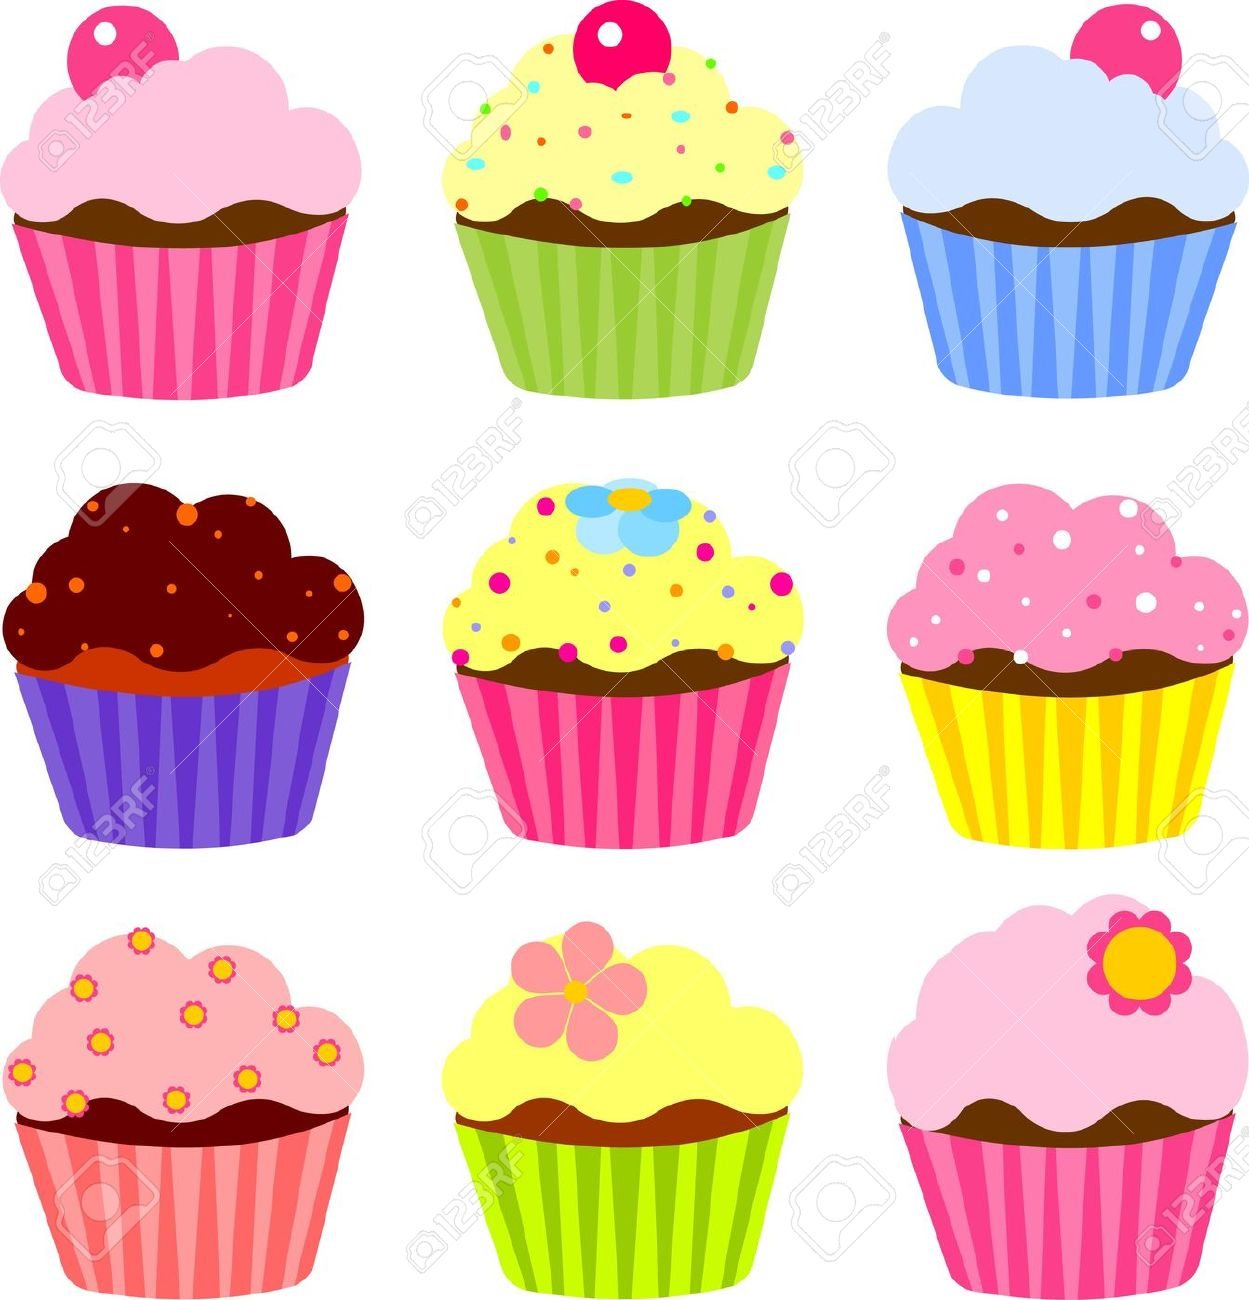 Cupcake Clipart Stock Photos .-Cupcake Clipart Stock Photos .-18